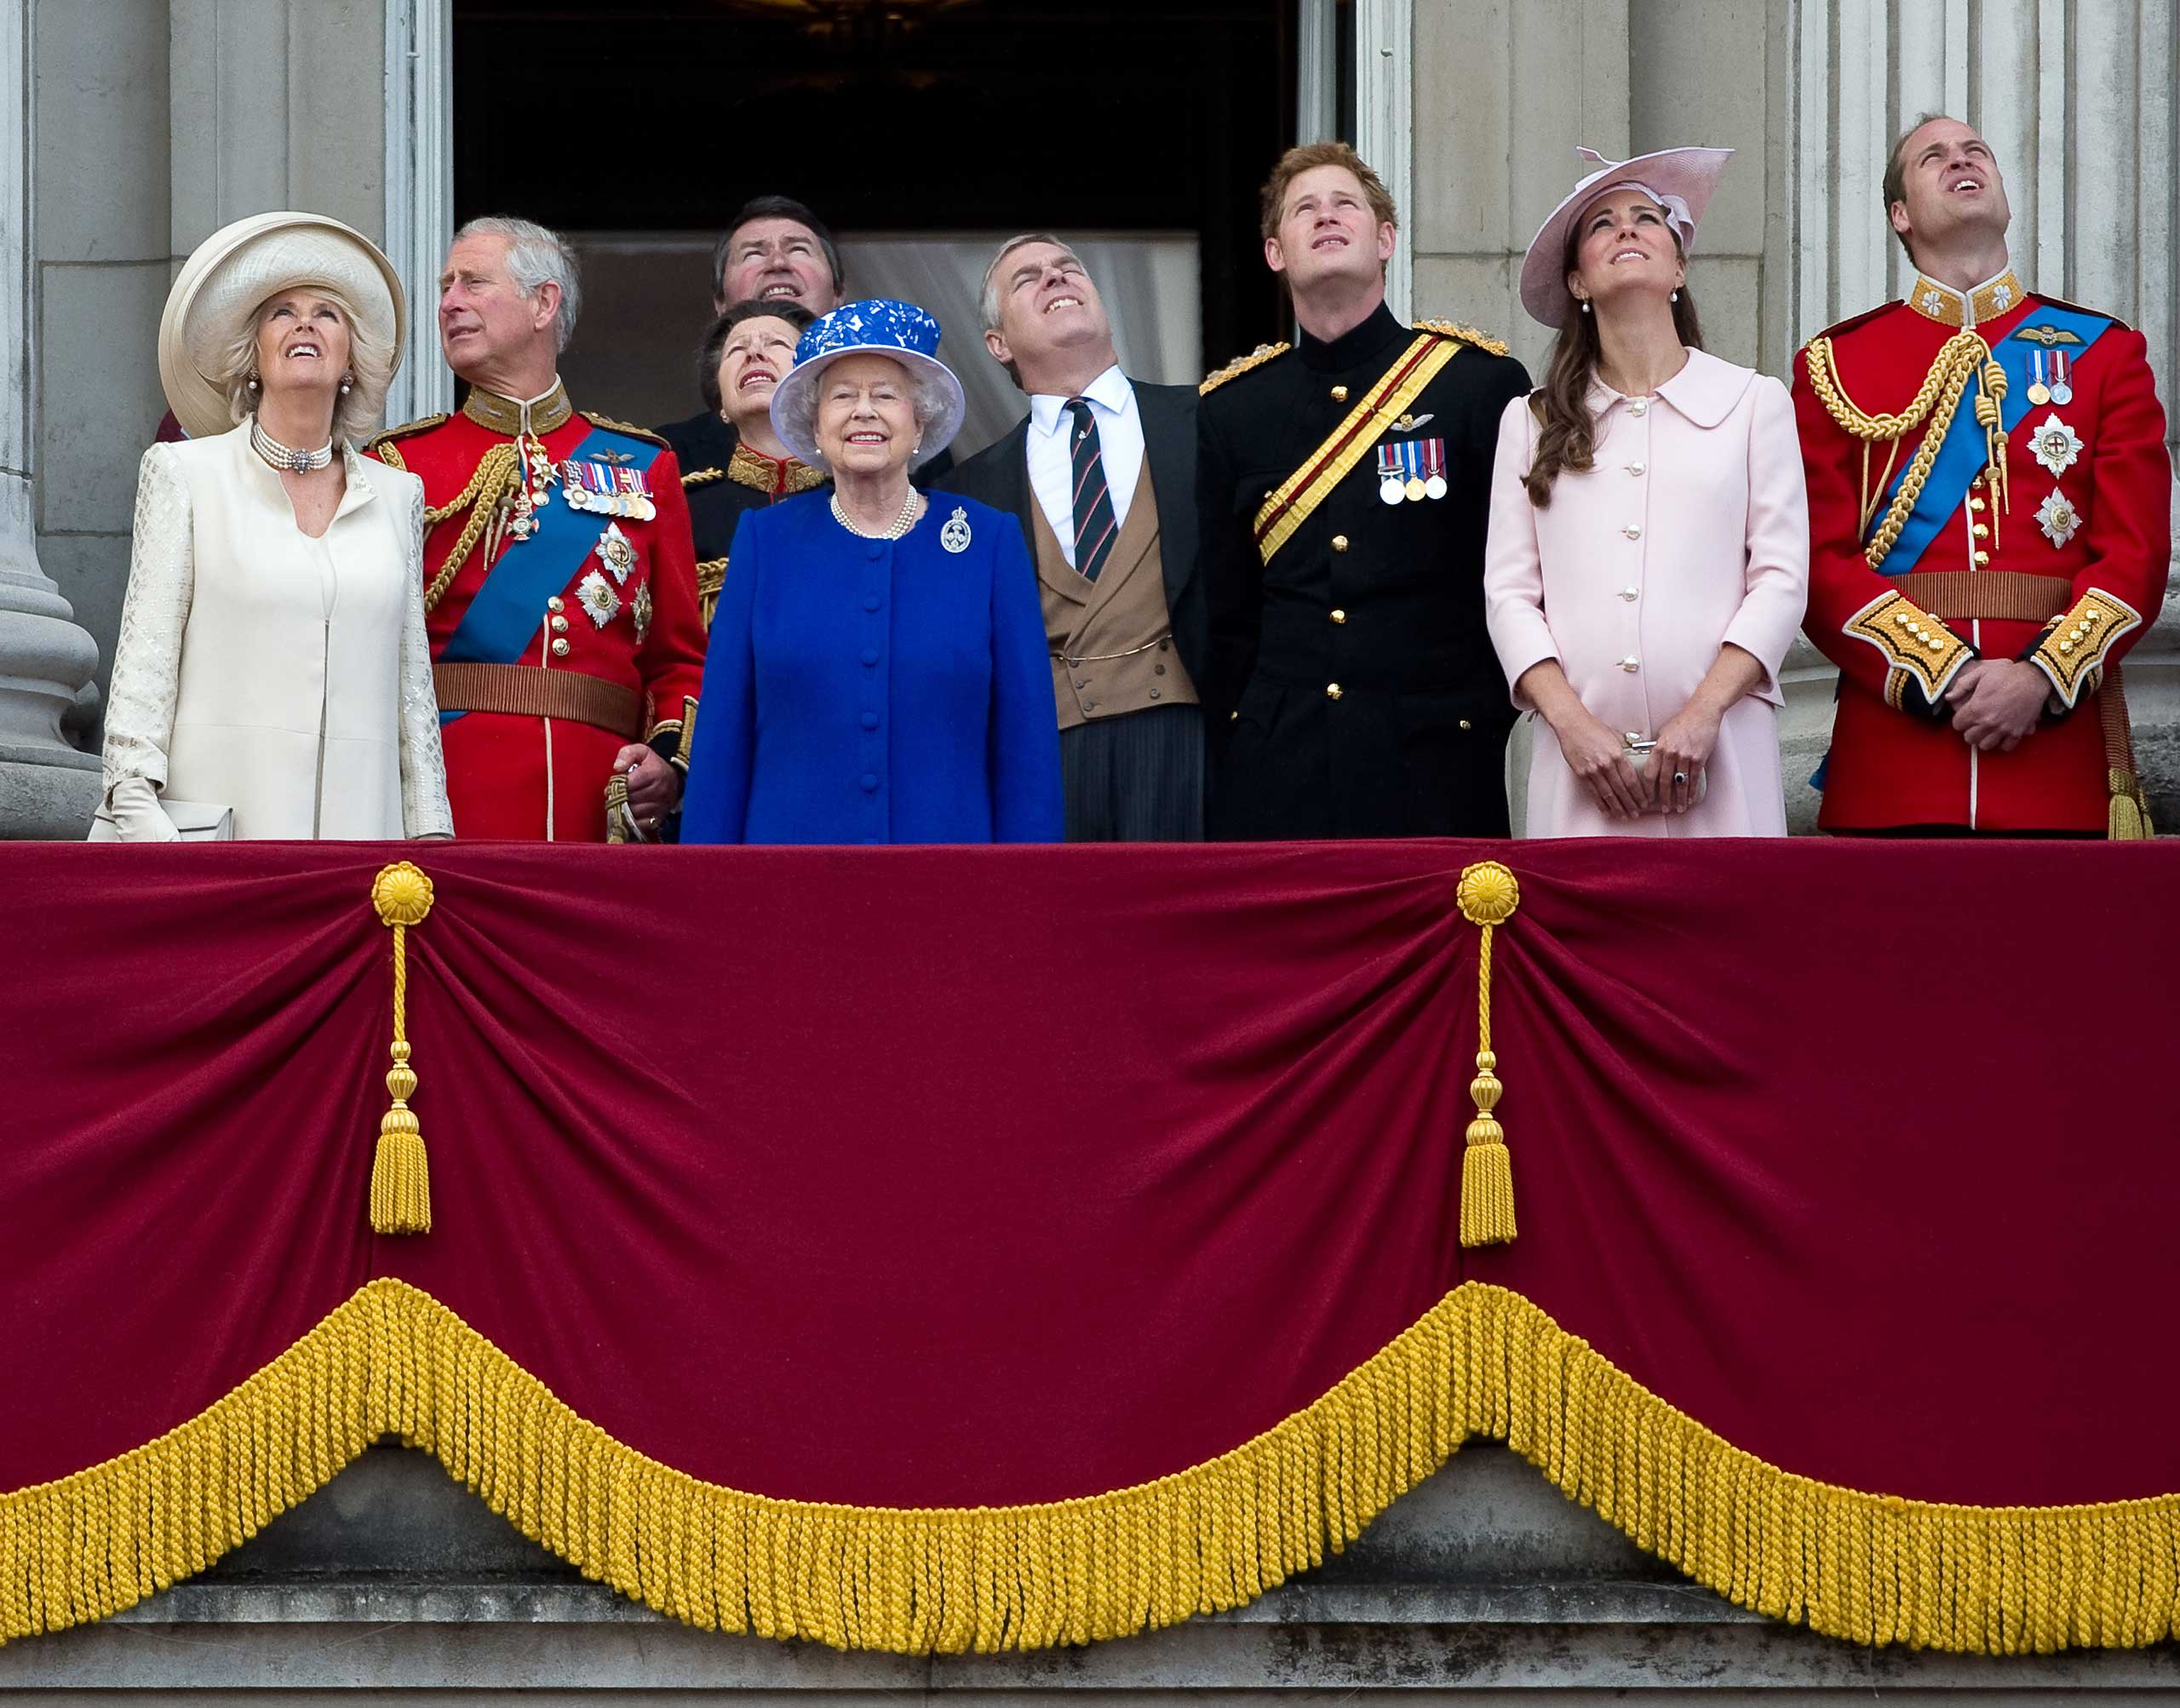 Queen Elizabeth II stands on the balcony of Buckingham Palace with members of the royal family after the Trooping the Colour ceremony to celebrate her official birthday in June 2013.